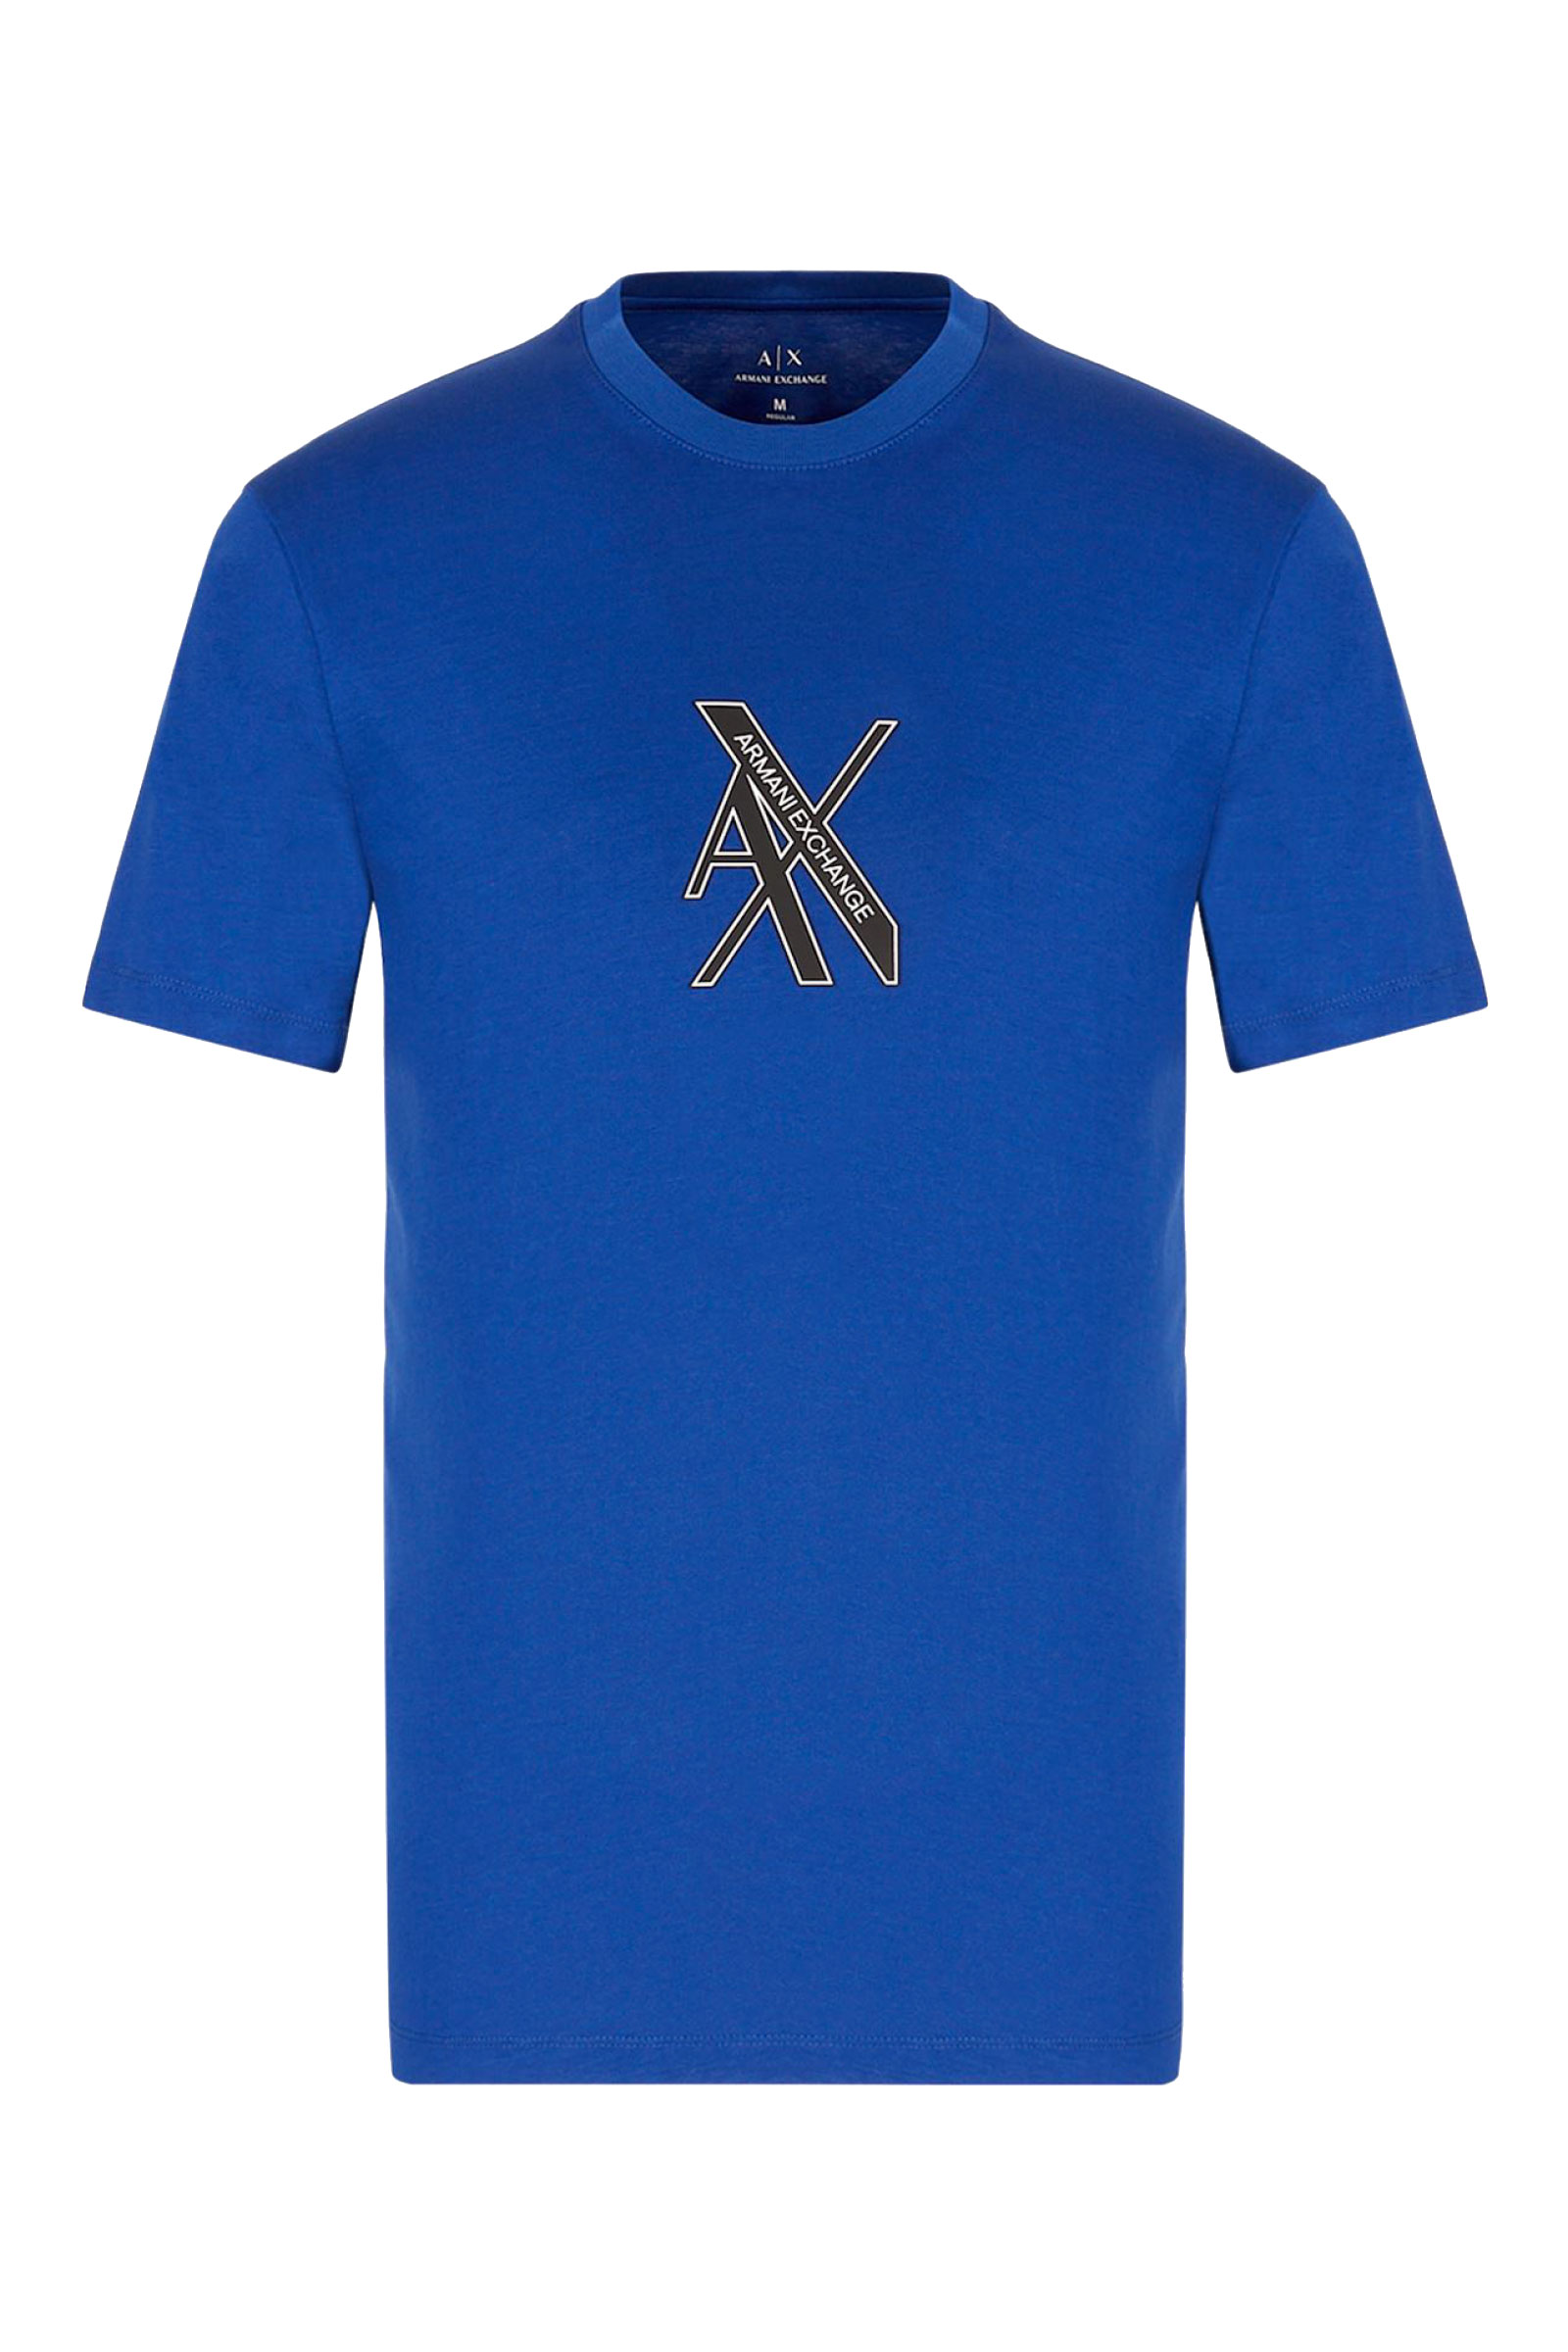 ARMANI EXCHANGE T-Shirt Uomo ARMANI EXCHANGE | T-Shirt | 3KZTLB ZJ9AZ1511